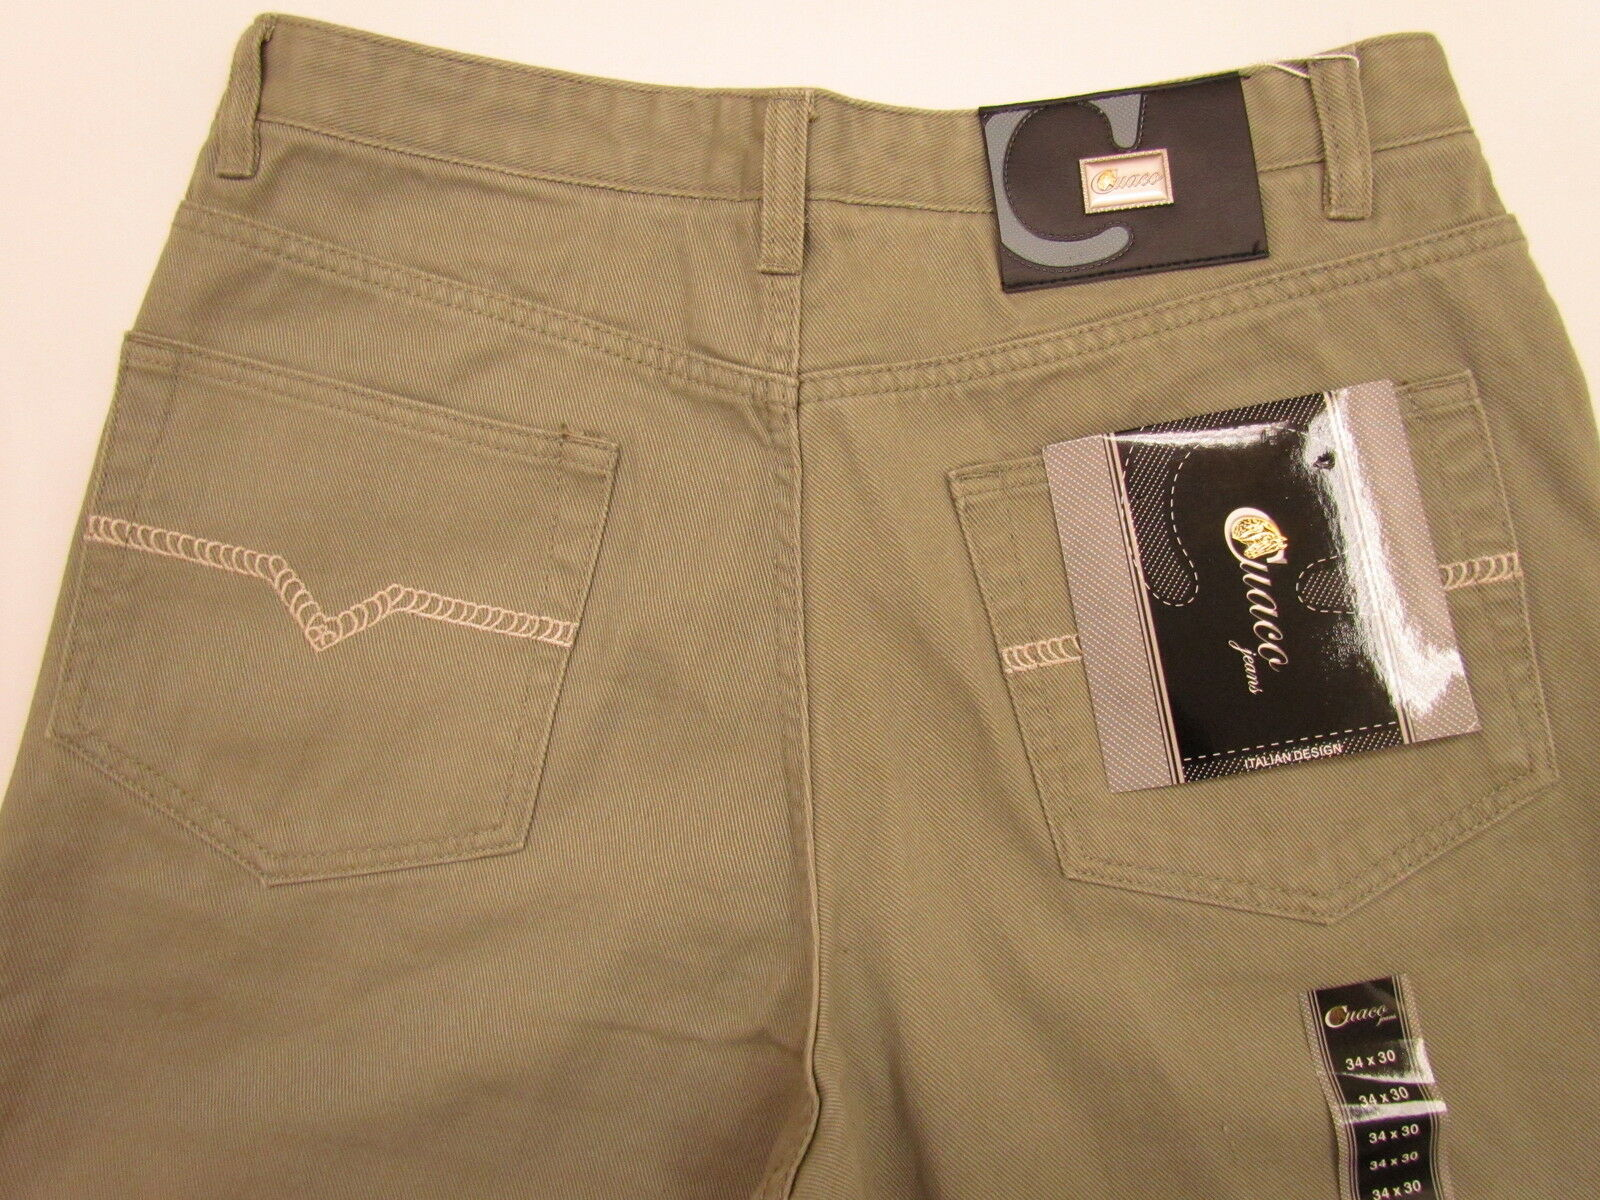 CUACO USA MENS SAGE GREEN with AMAZING ITALIAN DESIGN PANTS NWT 34 x 30